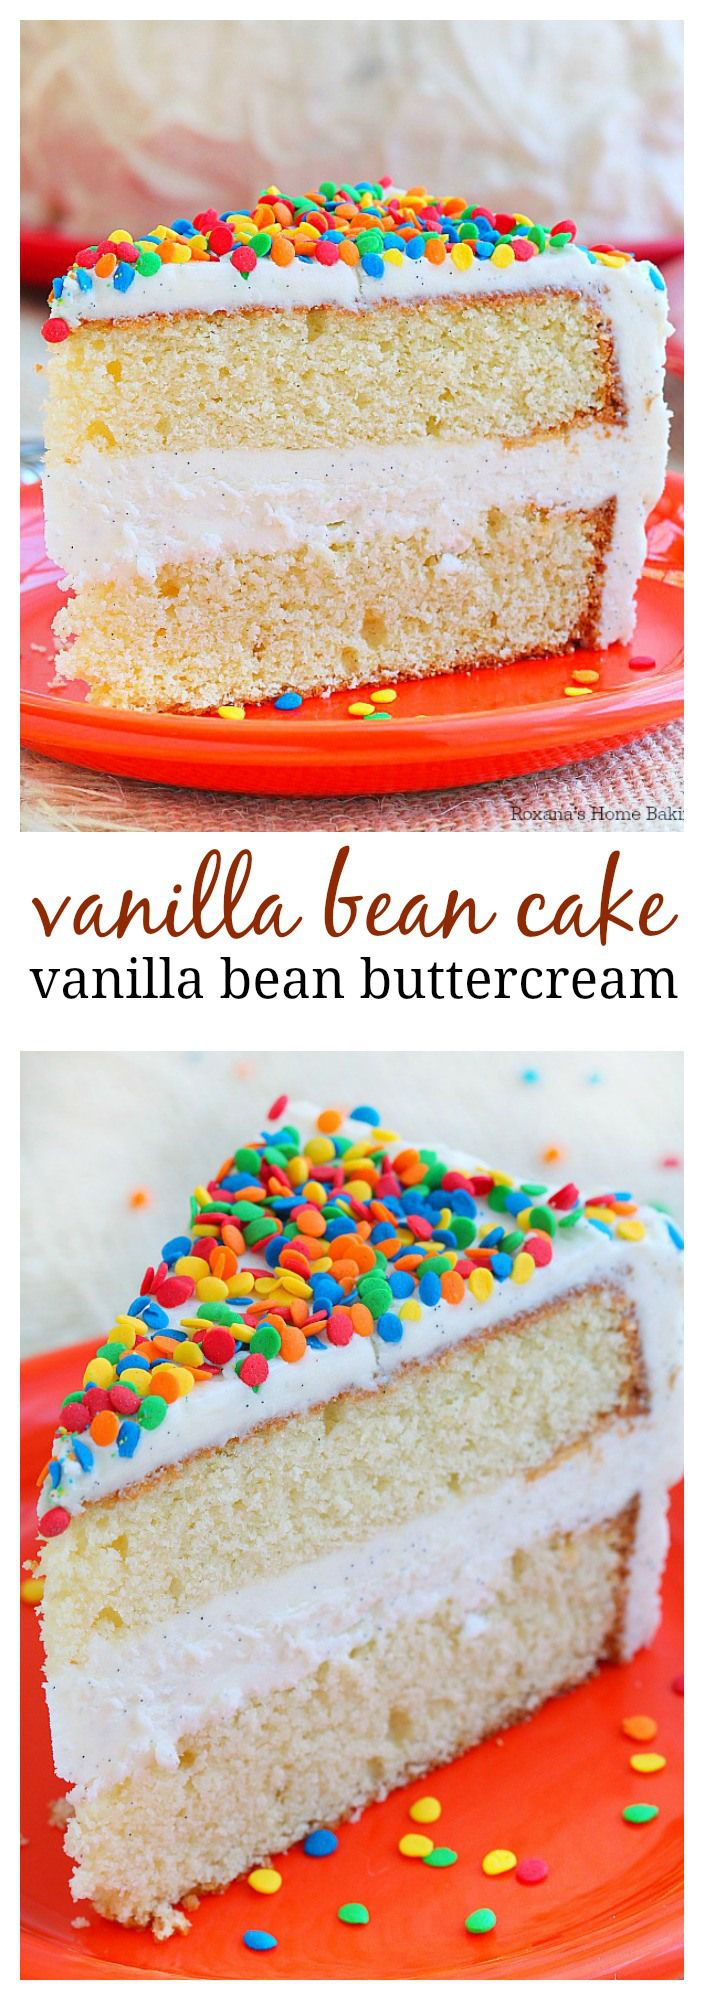 Everyone deserves a special treat on their birthday and this over-the-top vanilla bean cake topped with piles of fluffy vanilla bean frosting and colorful sprinkles makes your day extra special!